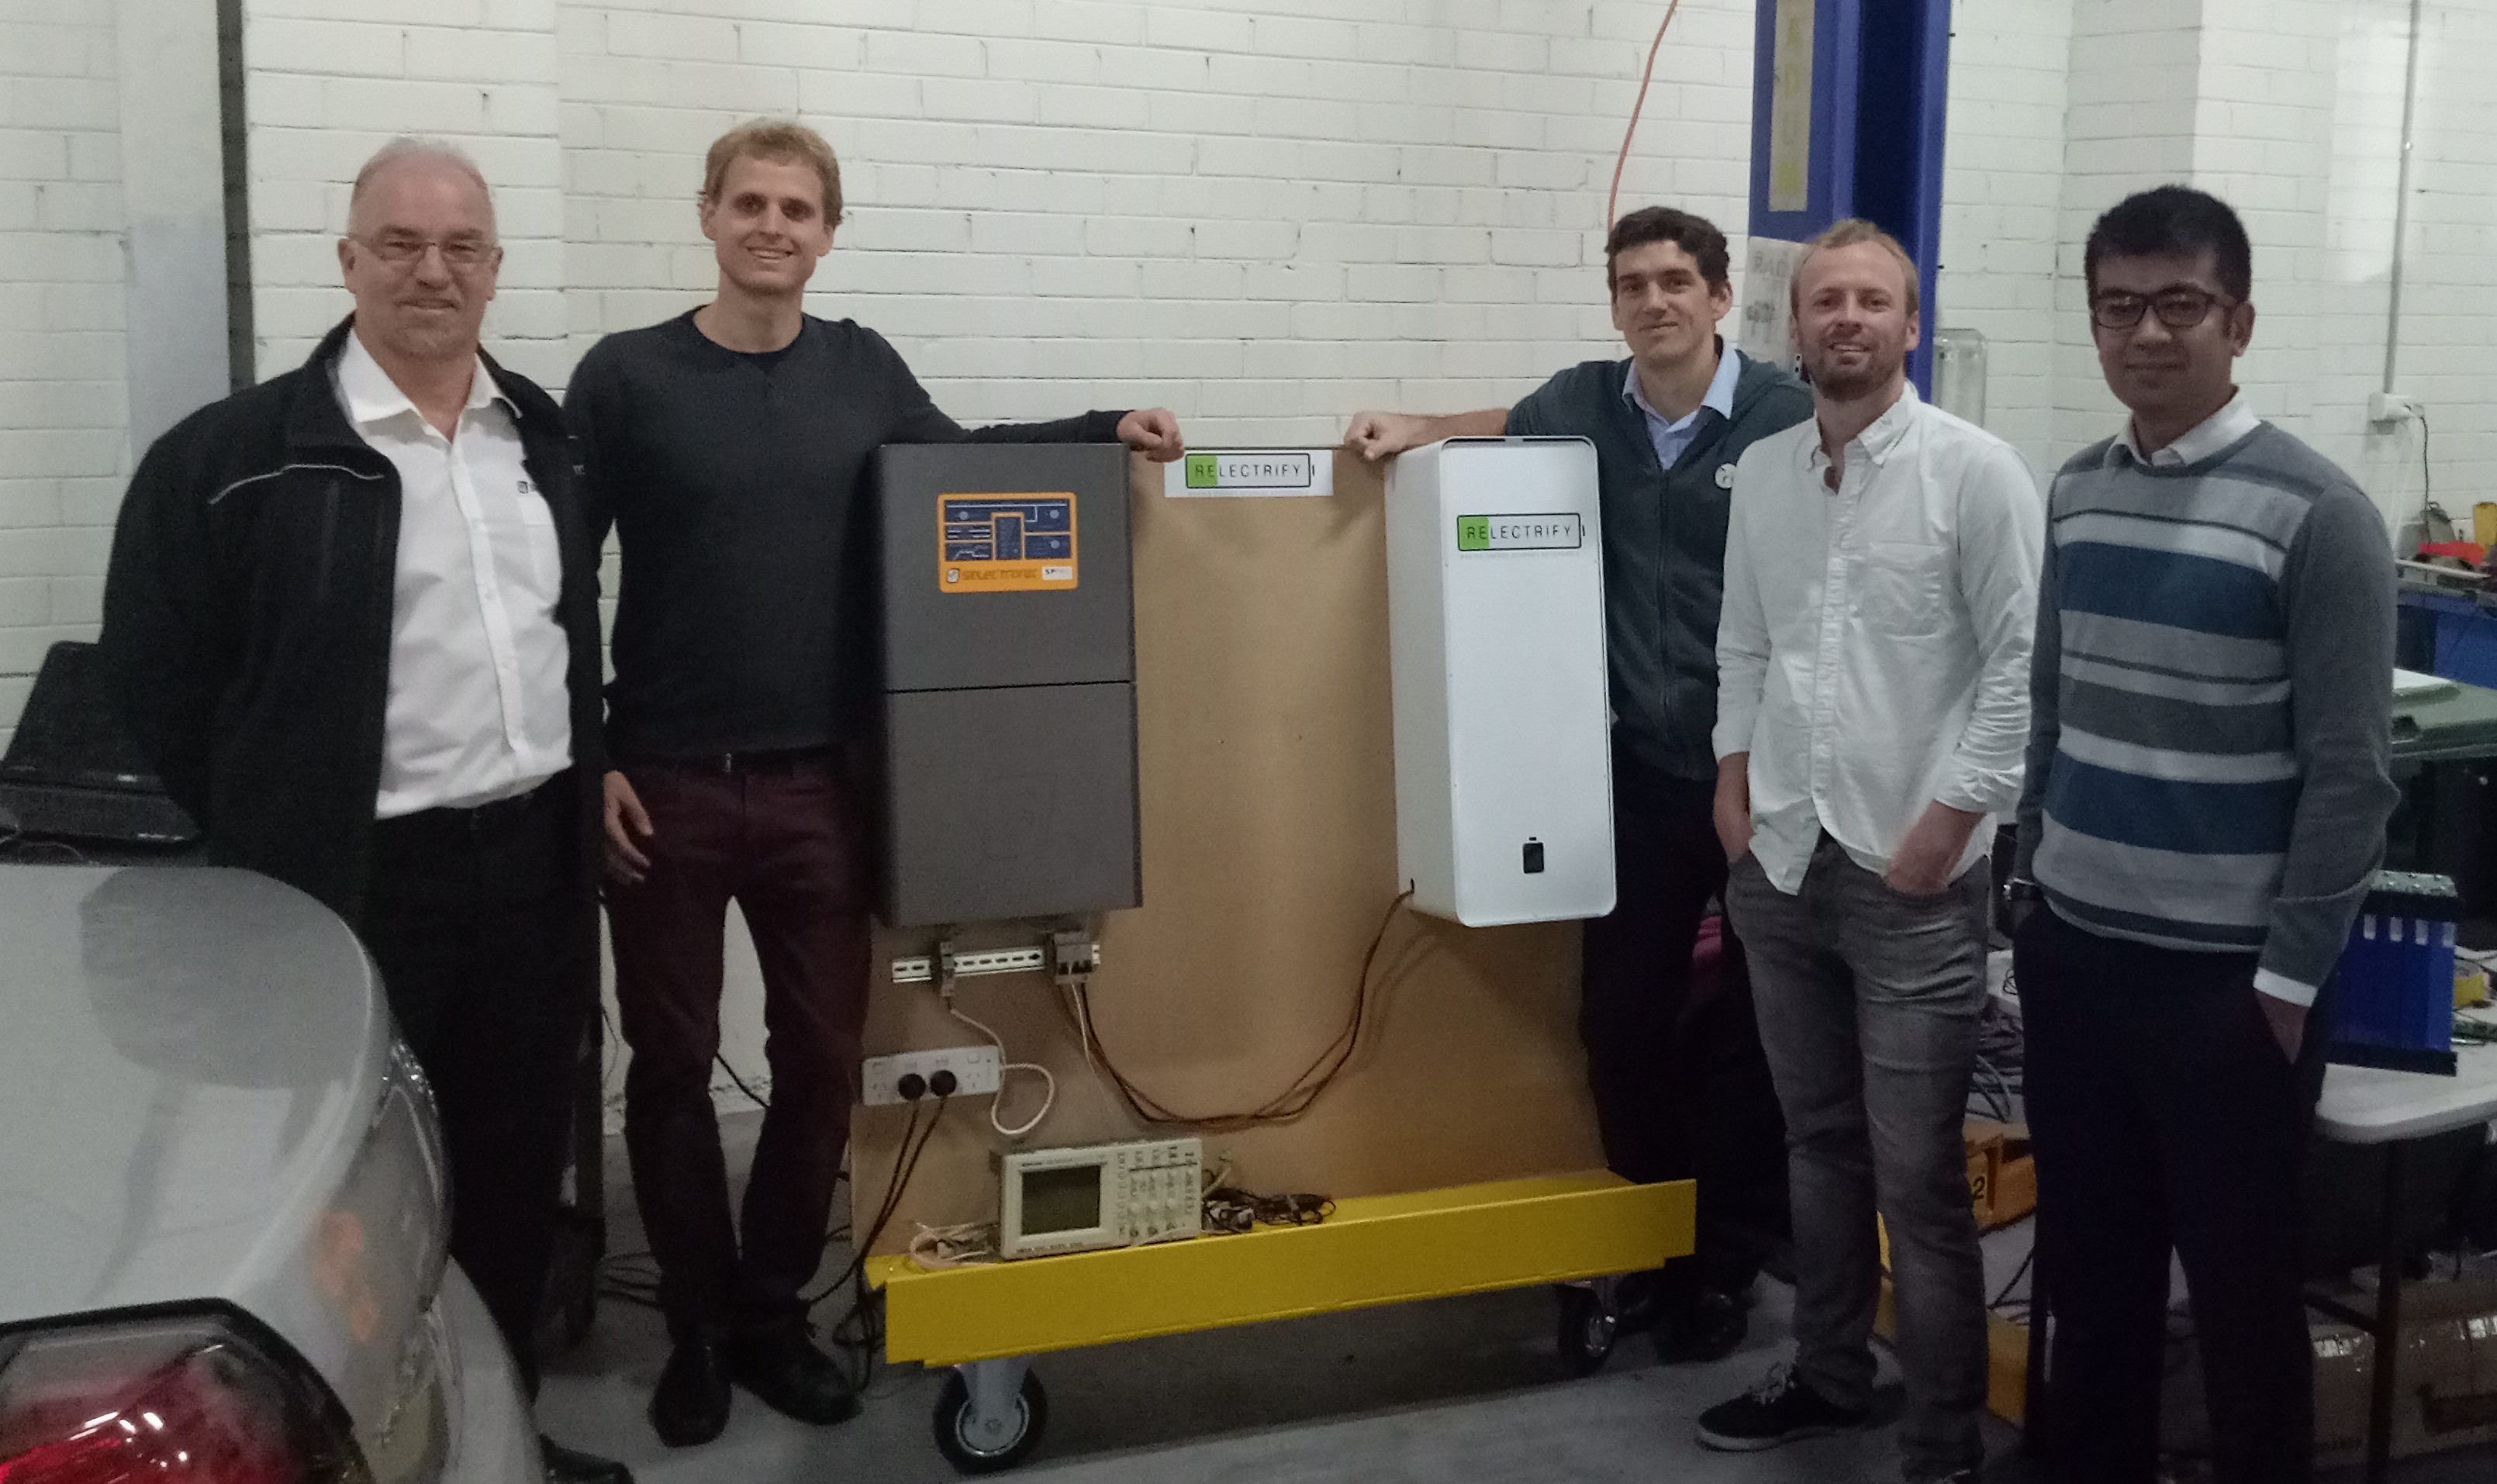 IBM Research Australia's energy storage optimisation project team. L-R: Rod Scott, CEO, Selectronic; Valentin Muenzel, Cofounder and CEO, Relectrify; Julian de Hoog, Research Scientist, IBM Research; Dan Crowley, Cofounder and CTO, Relectrify; Paras Karki, Electronics Engineer, Selectronic.